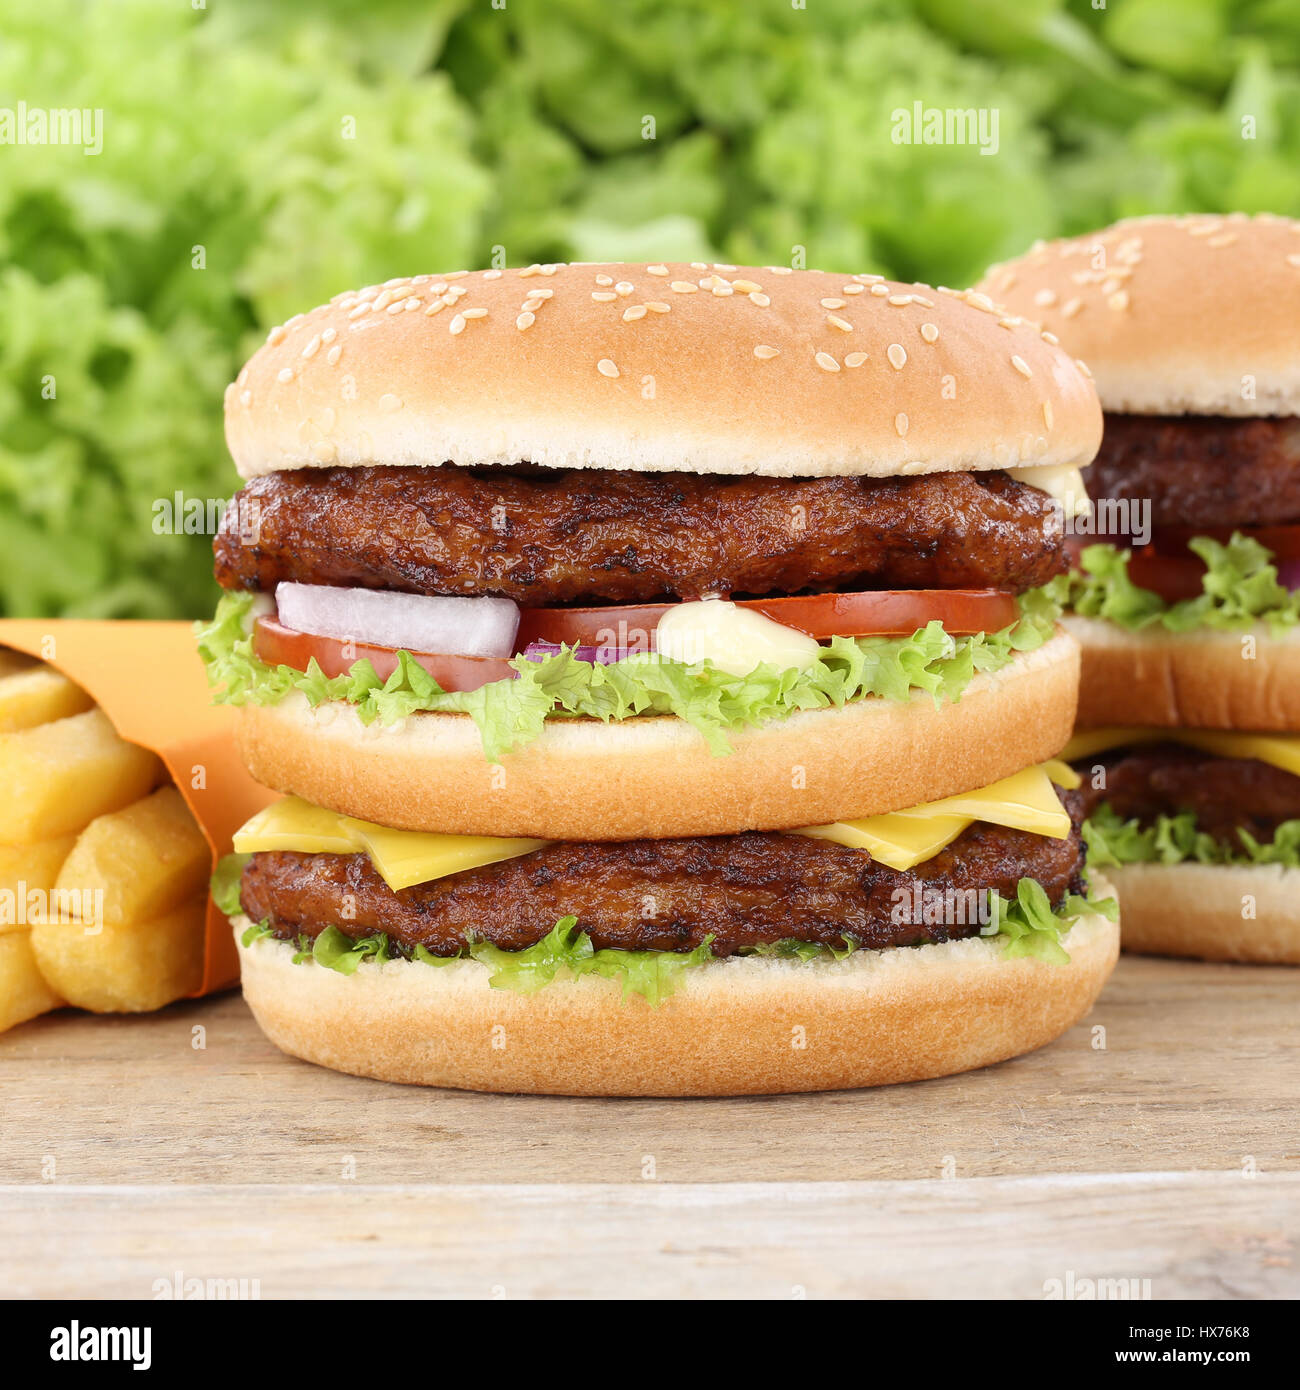 Double burger hamburger and fries tomatoes lettuce fast food - Stock Image